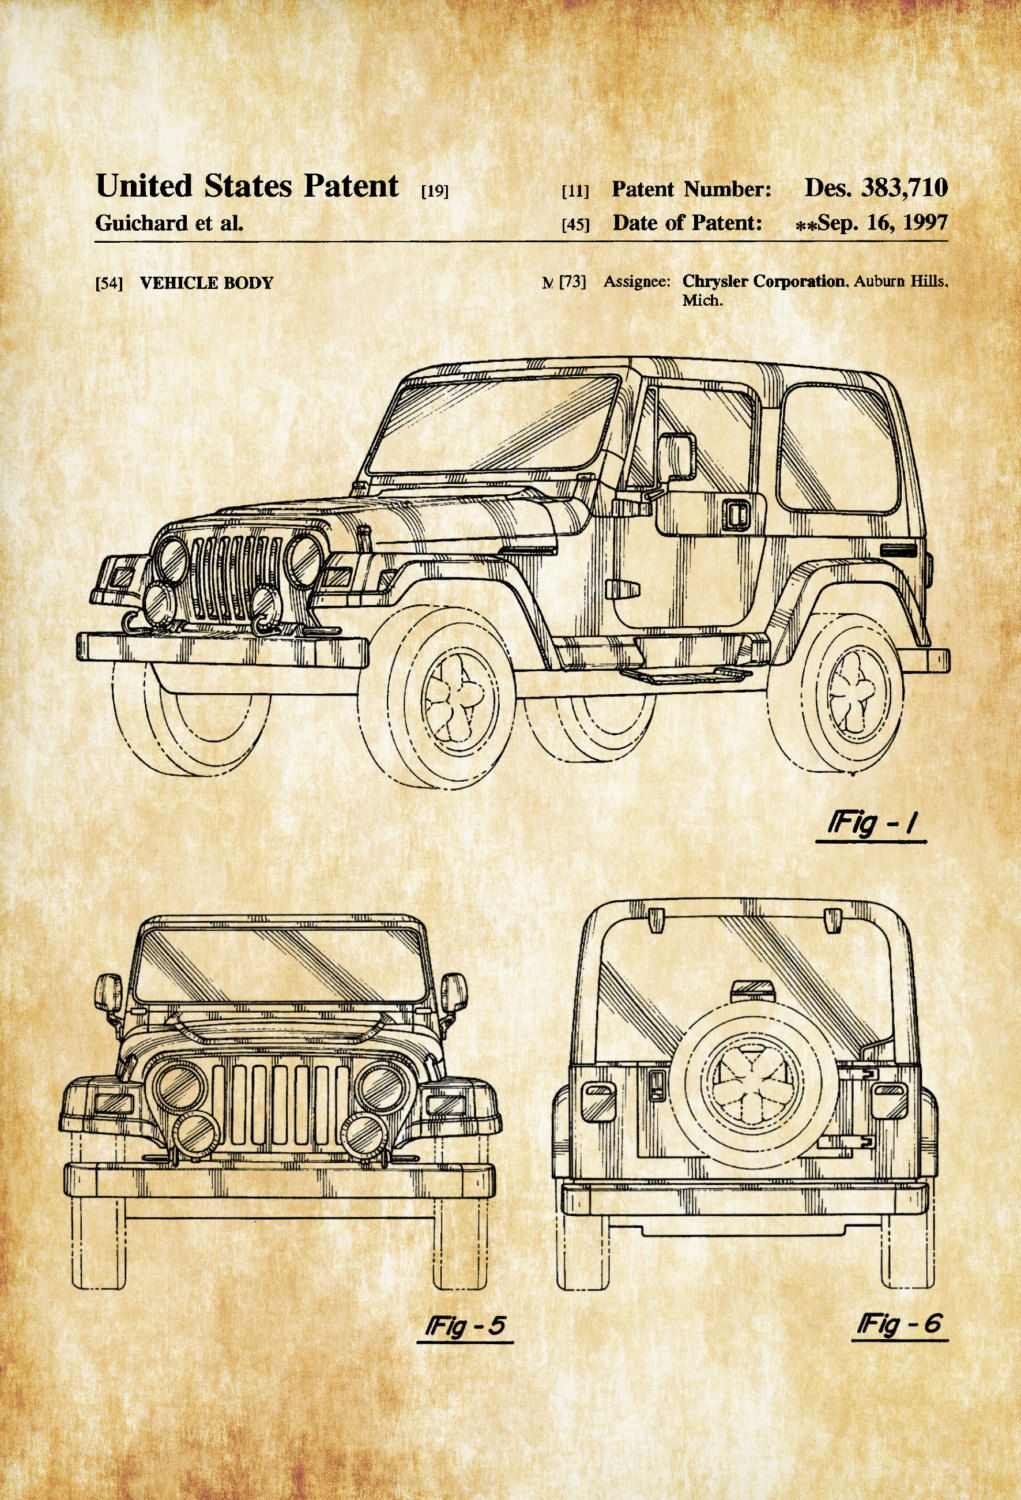 Jeep wrangler patent patent print wall decor automobile decor a patent print poster of a 1997 jeep wrangler tj designed for chrysler corporation the patent was issued by the united states patent office on september 6 malvernweather Gallery